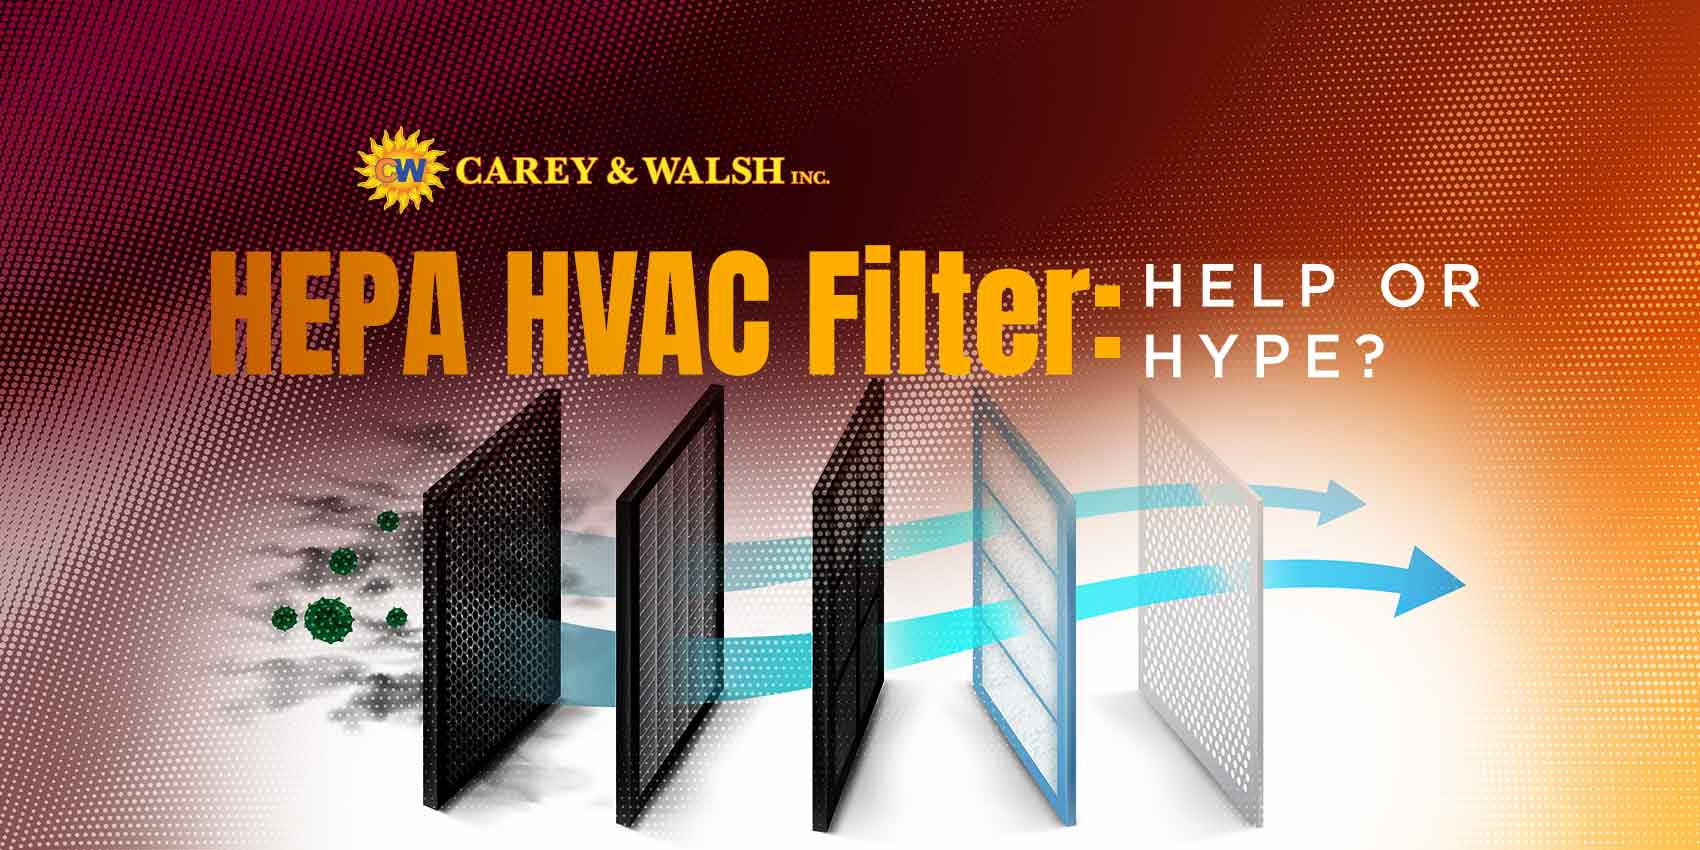 HEPA HVAC Filter: Help or Hype?